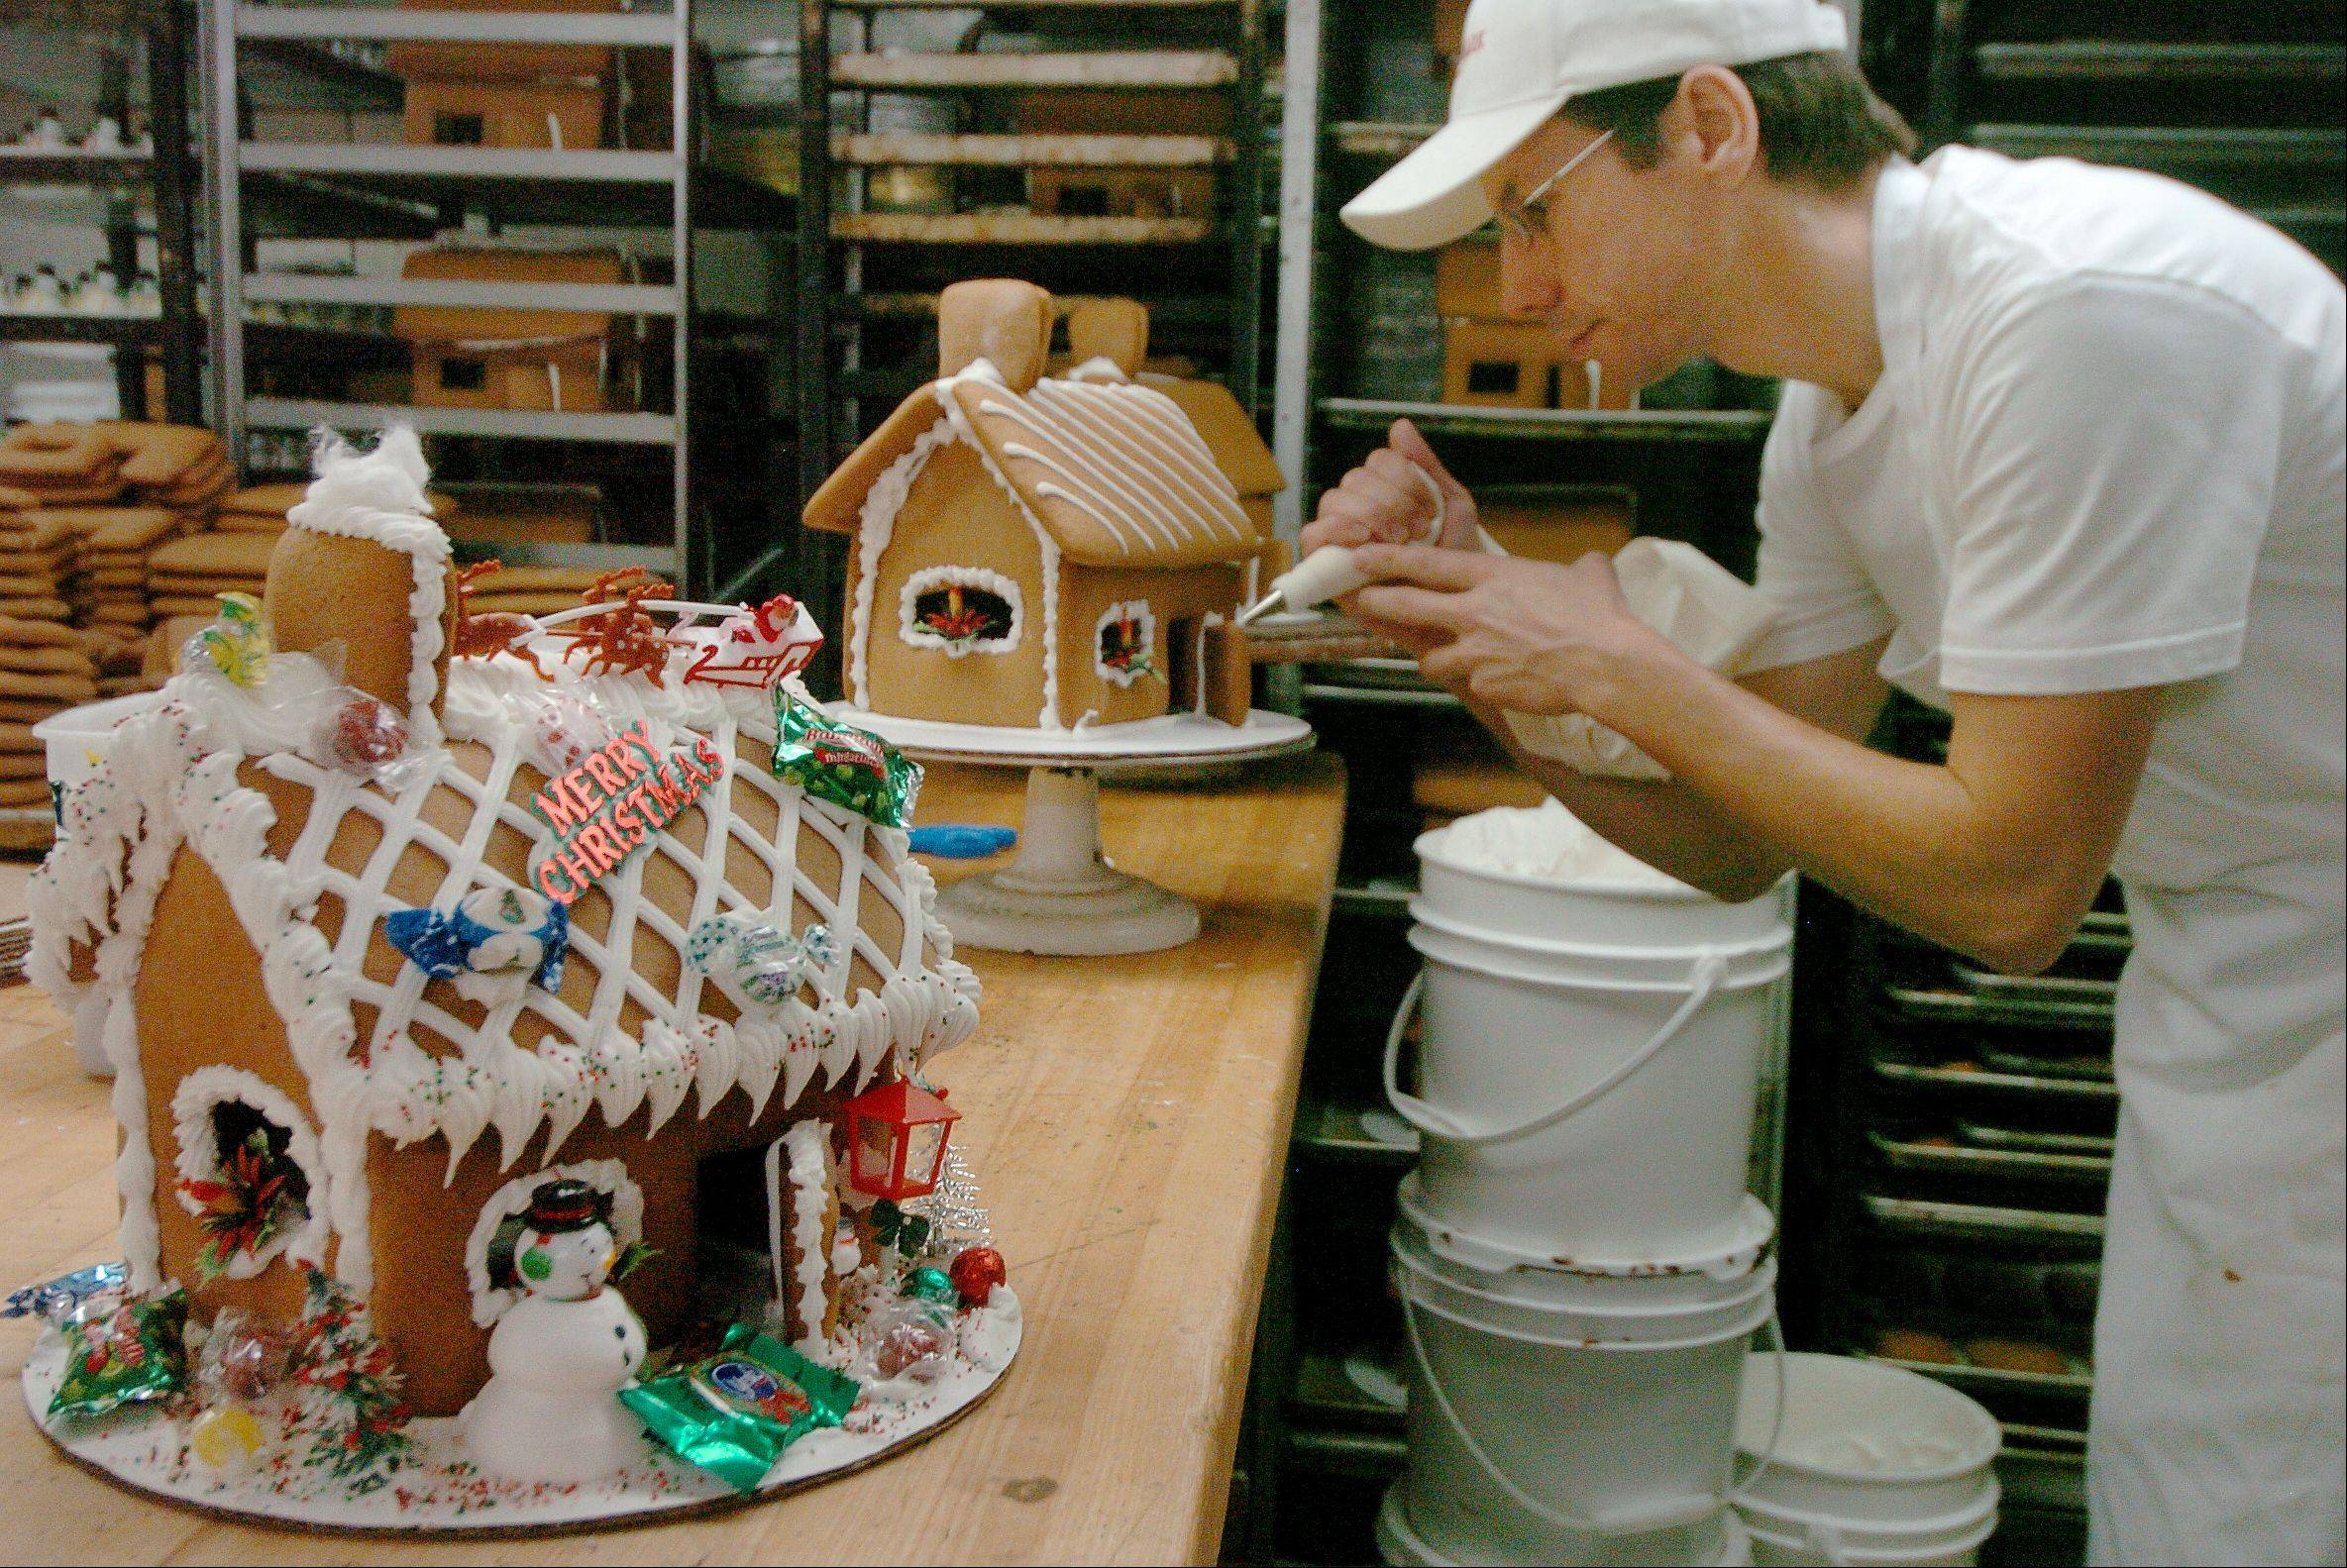 Cake decorator Chris Kowalczyk puts the finishing touches on one of 200 gingerbread houses at Central Continental Bakery in Mount Prospect.